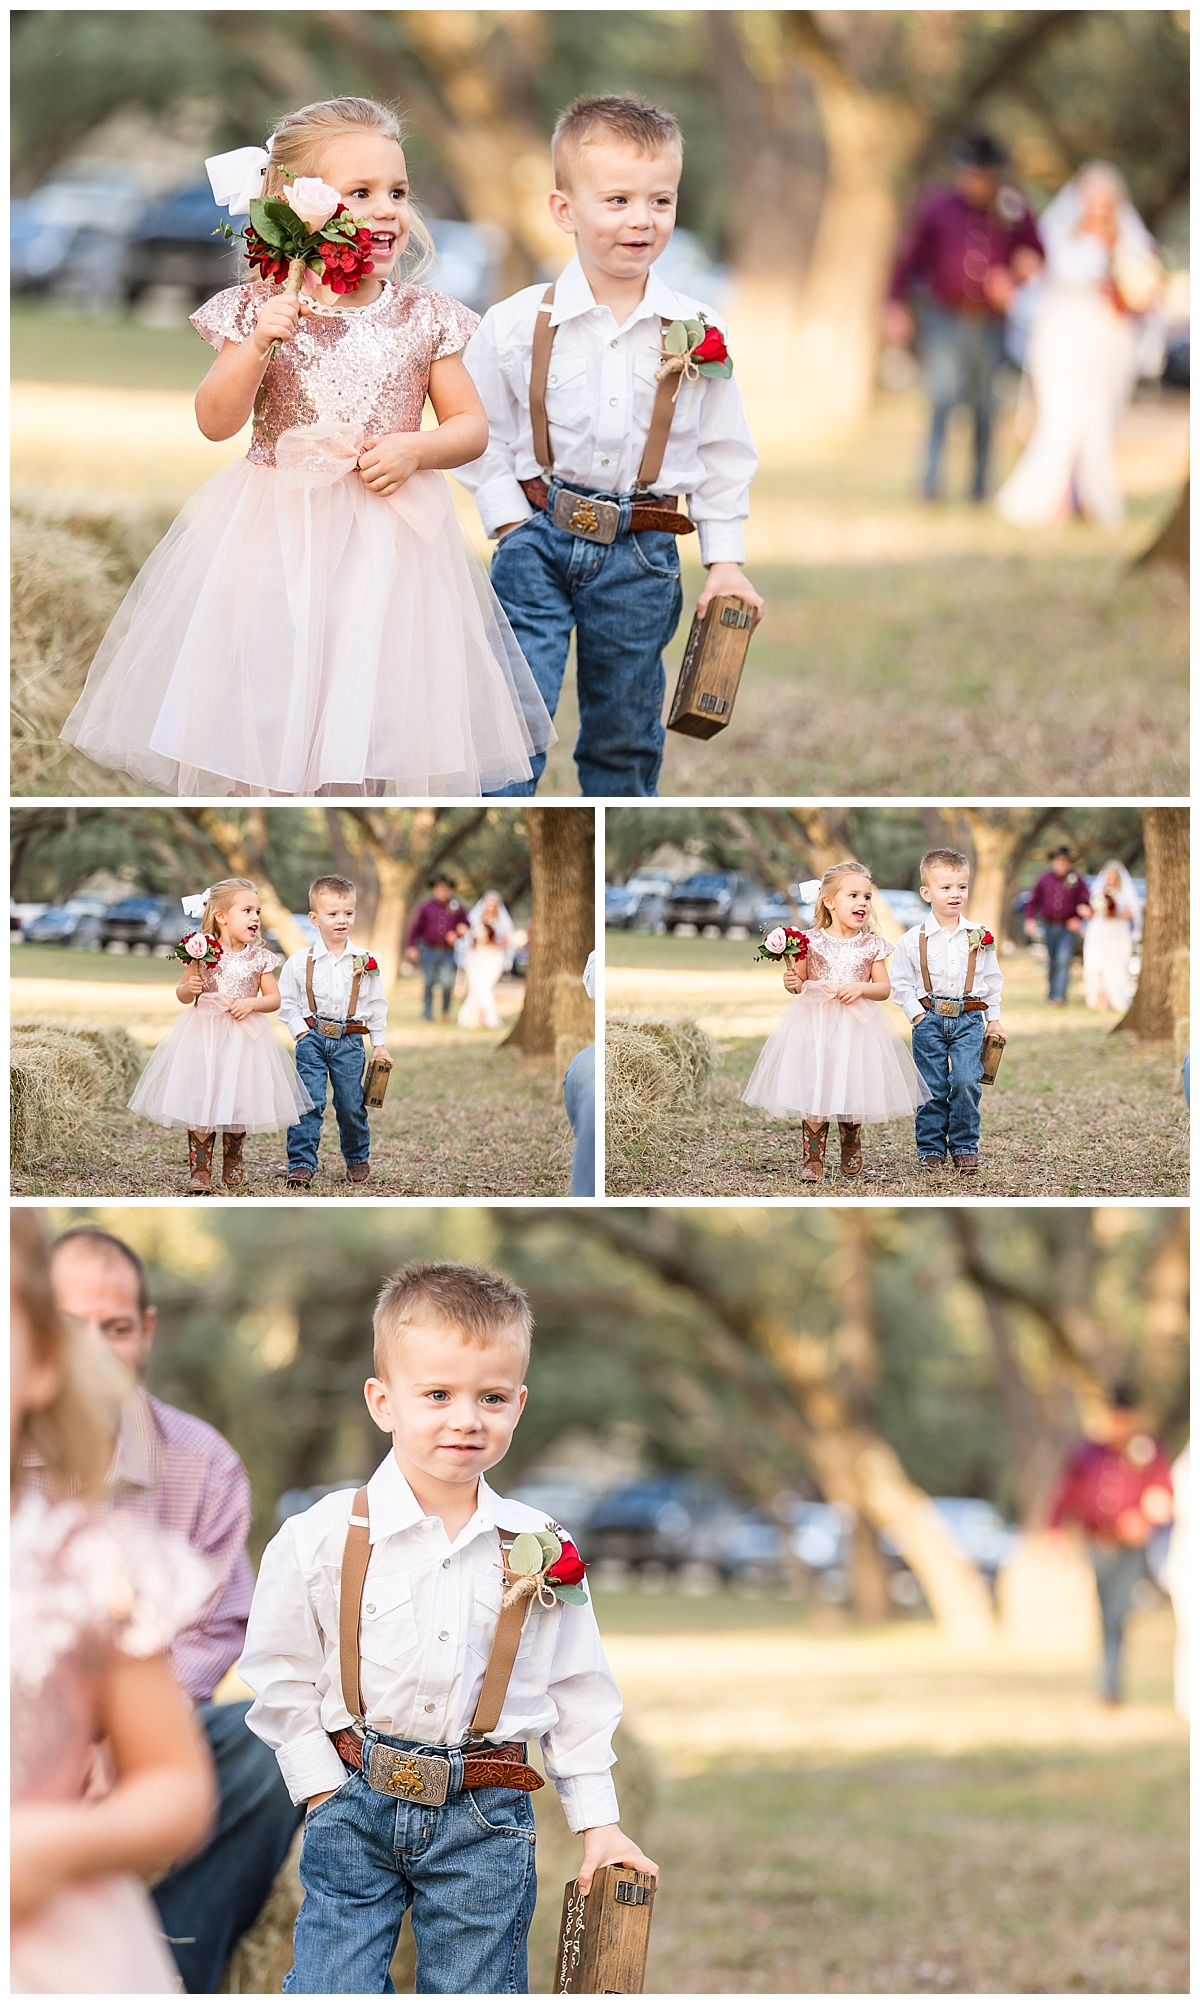 Wedding-Photographer-LaVernia-Texas-Ceremony-Under-the-Trees-Bride-Groom-Fall-McDonald-Carly-Barton-Photography_0010.jpg